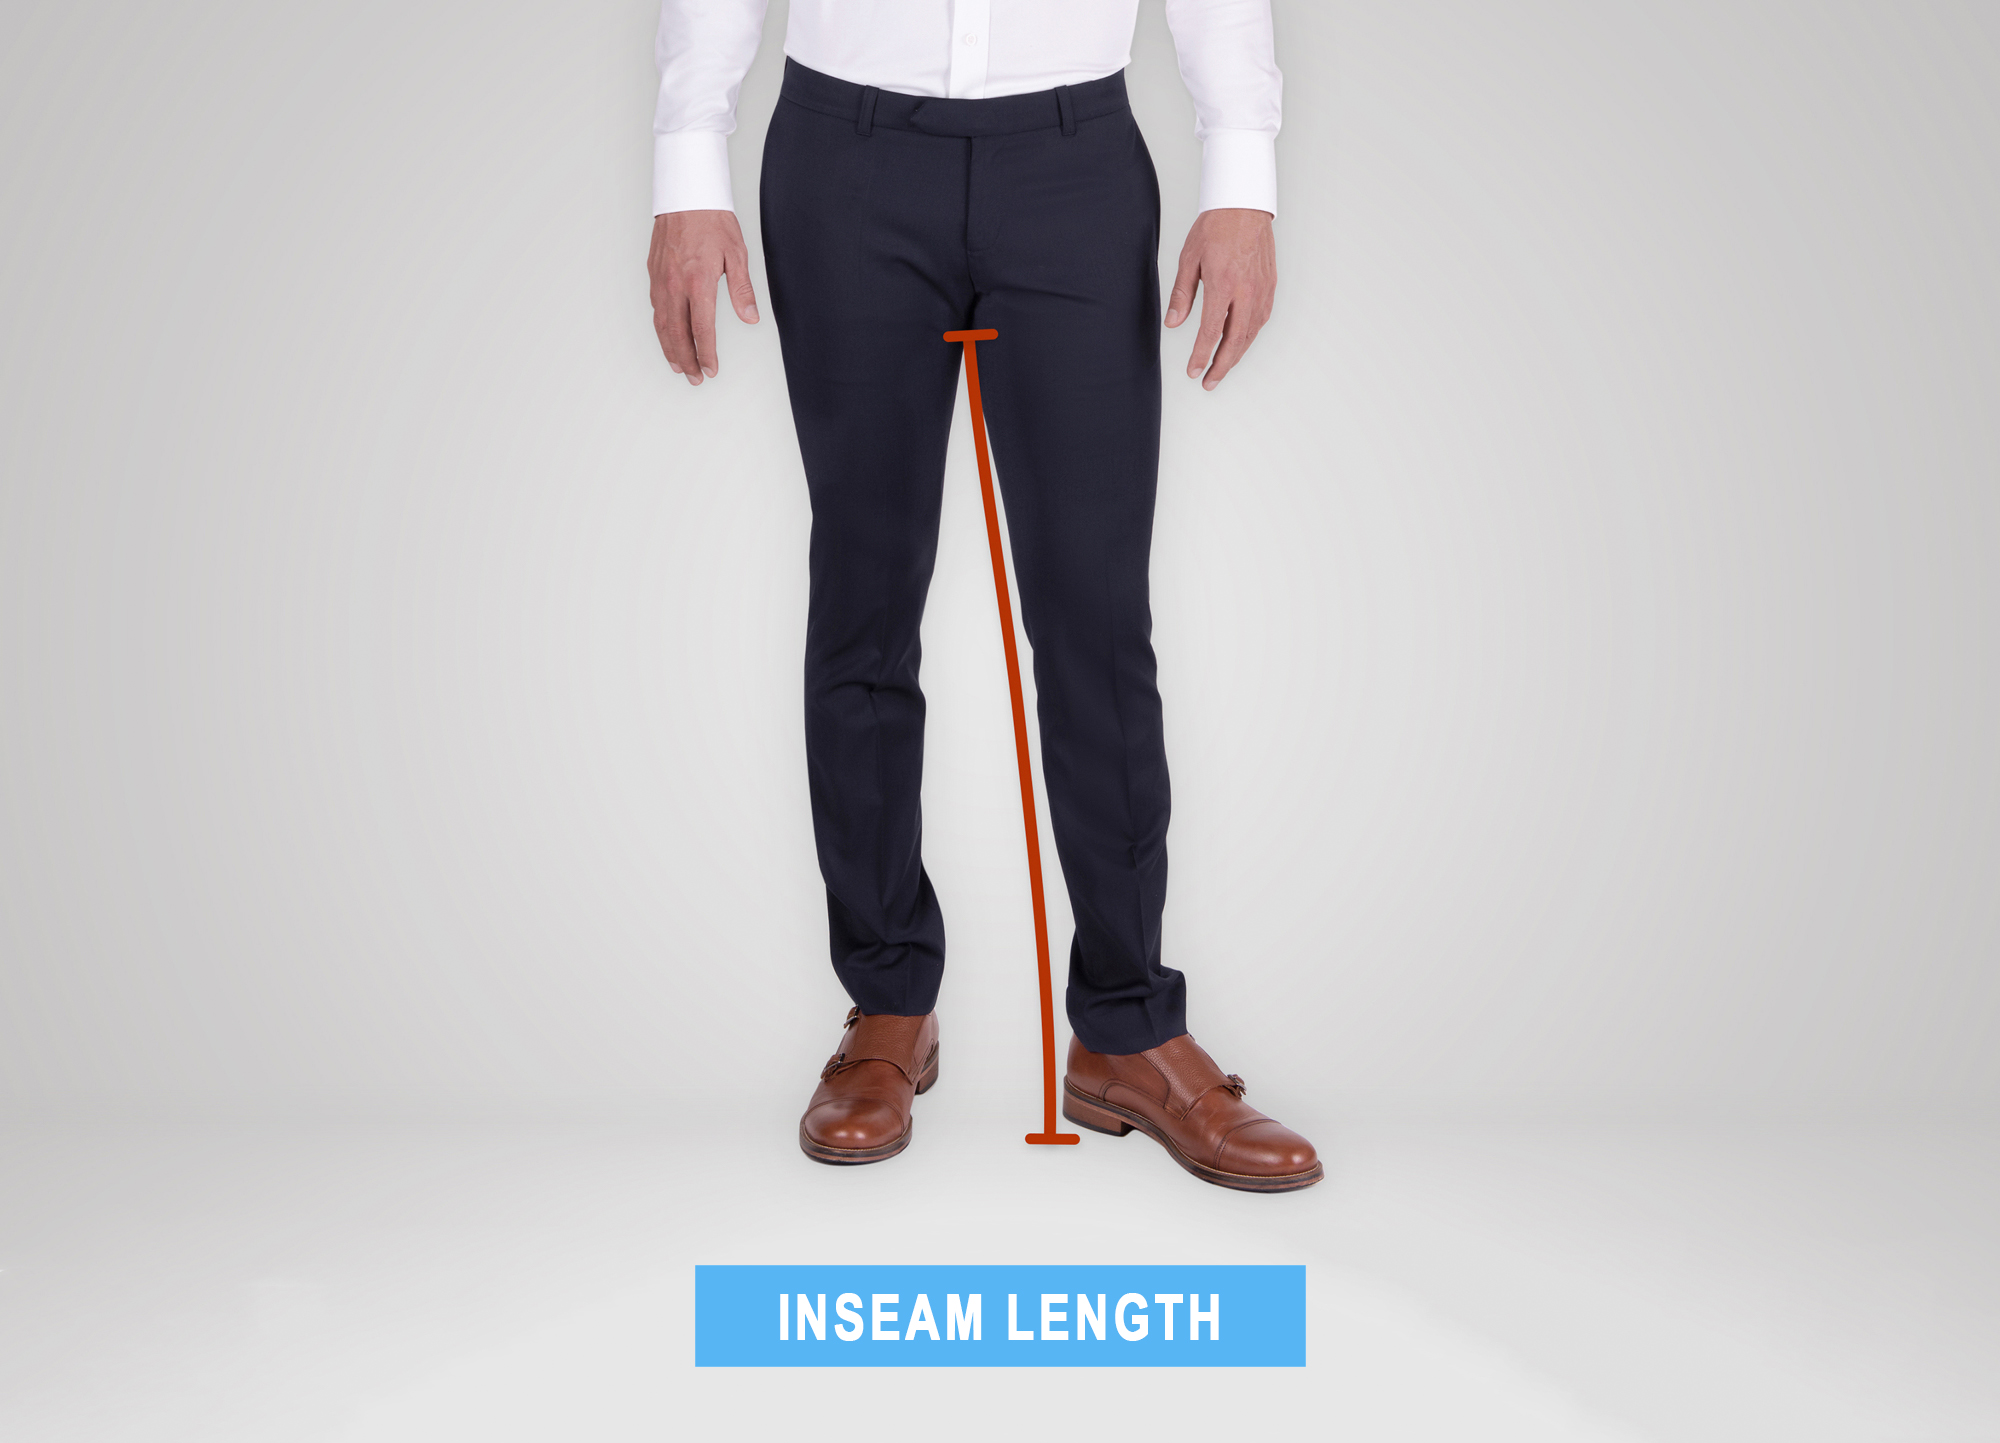 how to measure pants' inseam length